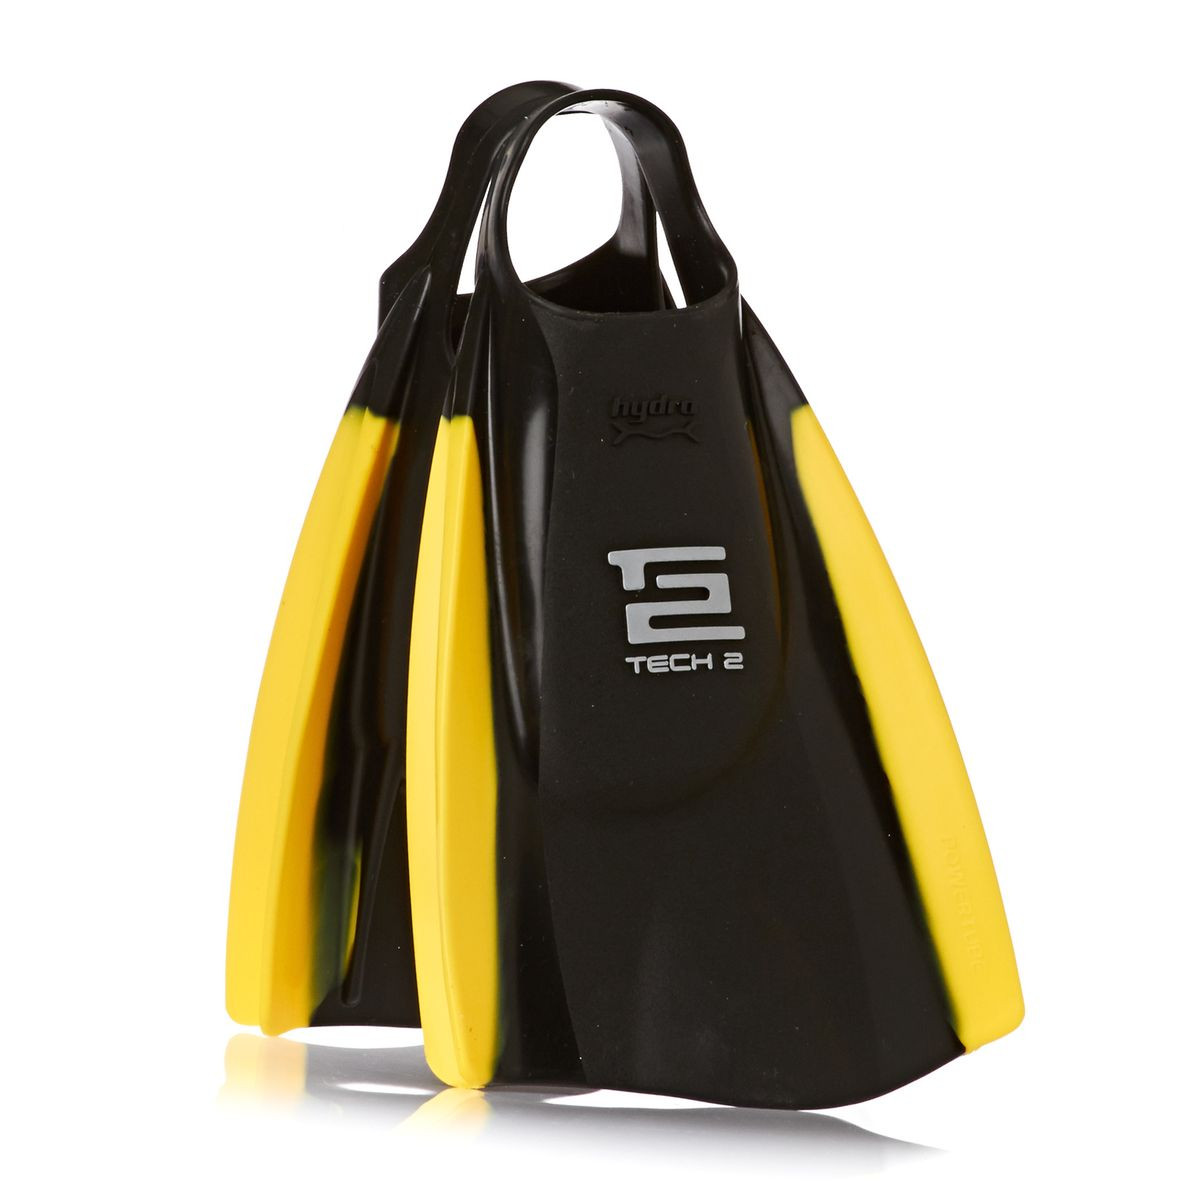 Hydro Tech 2 Bodyboard Fins - Black/ Yellow